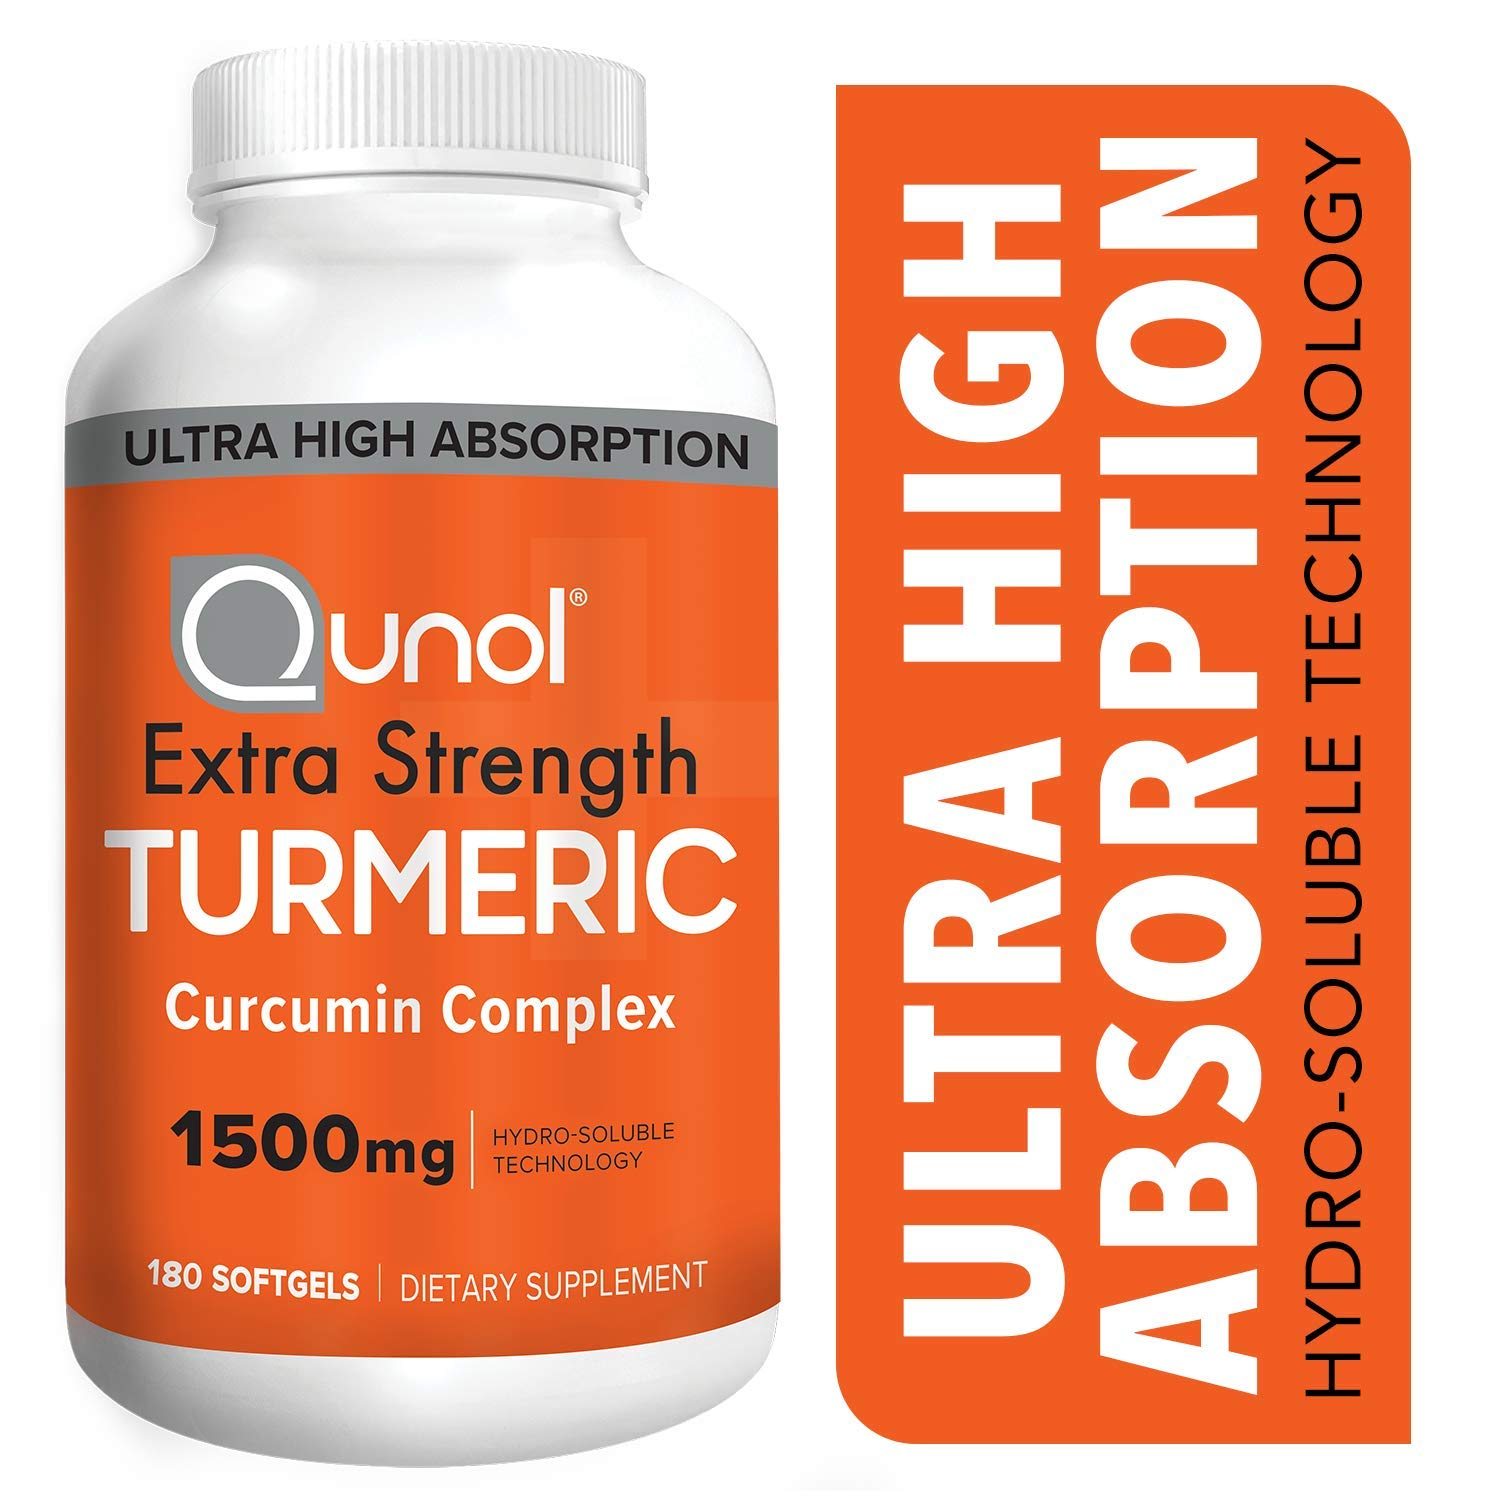 Turmeric Curcumin Softgels, Qunol with Ultra High Absorption 1500mg, Joint Support, Dietary Supplement, Extra Strength, 180 Softgels by Qunol